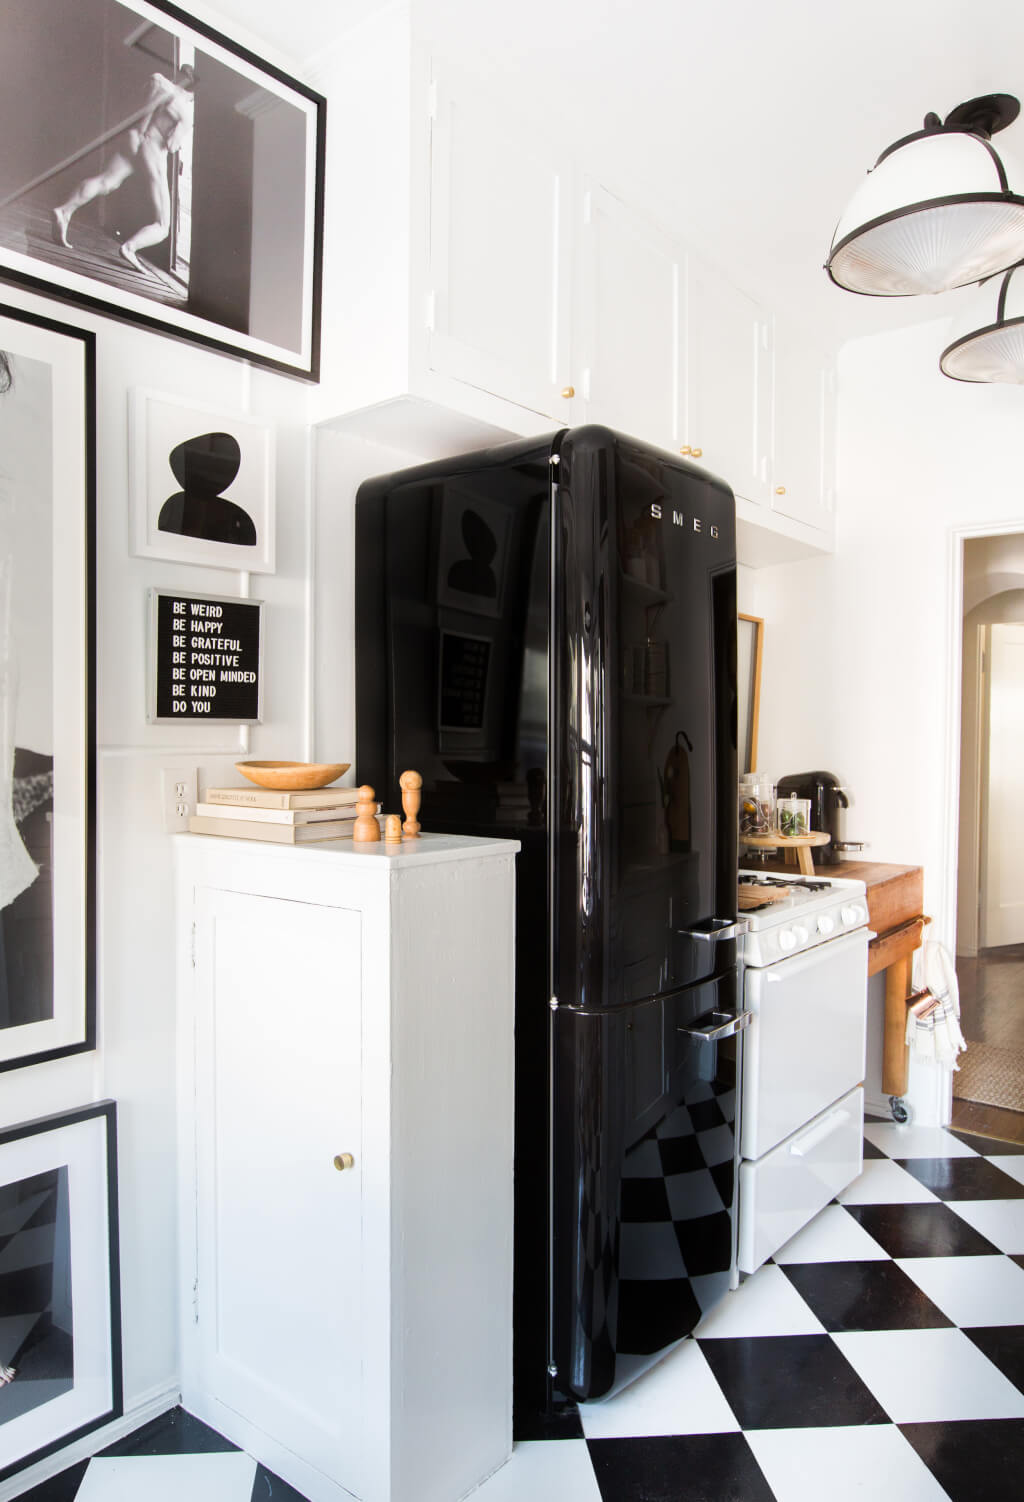 Brady-Tolbert_Emily-Henderson_Black-and-White-Kitchen_Vintage_Apartment-Refresh_Wood_Brass_Checkered-Floor_Copper-Pots_Eclectic_Glam_Modern_Traditional_23-1024x1502